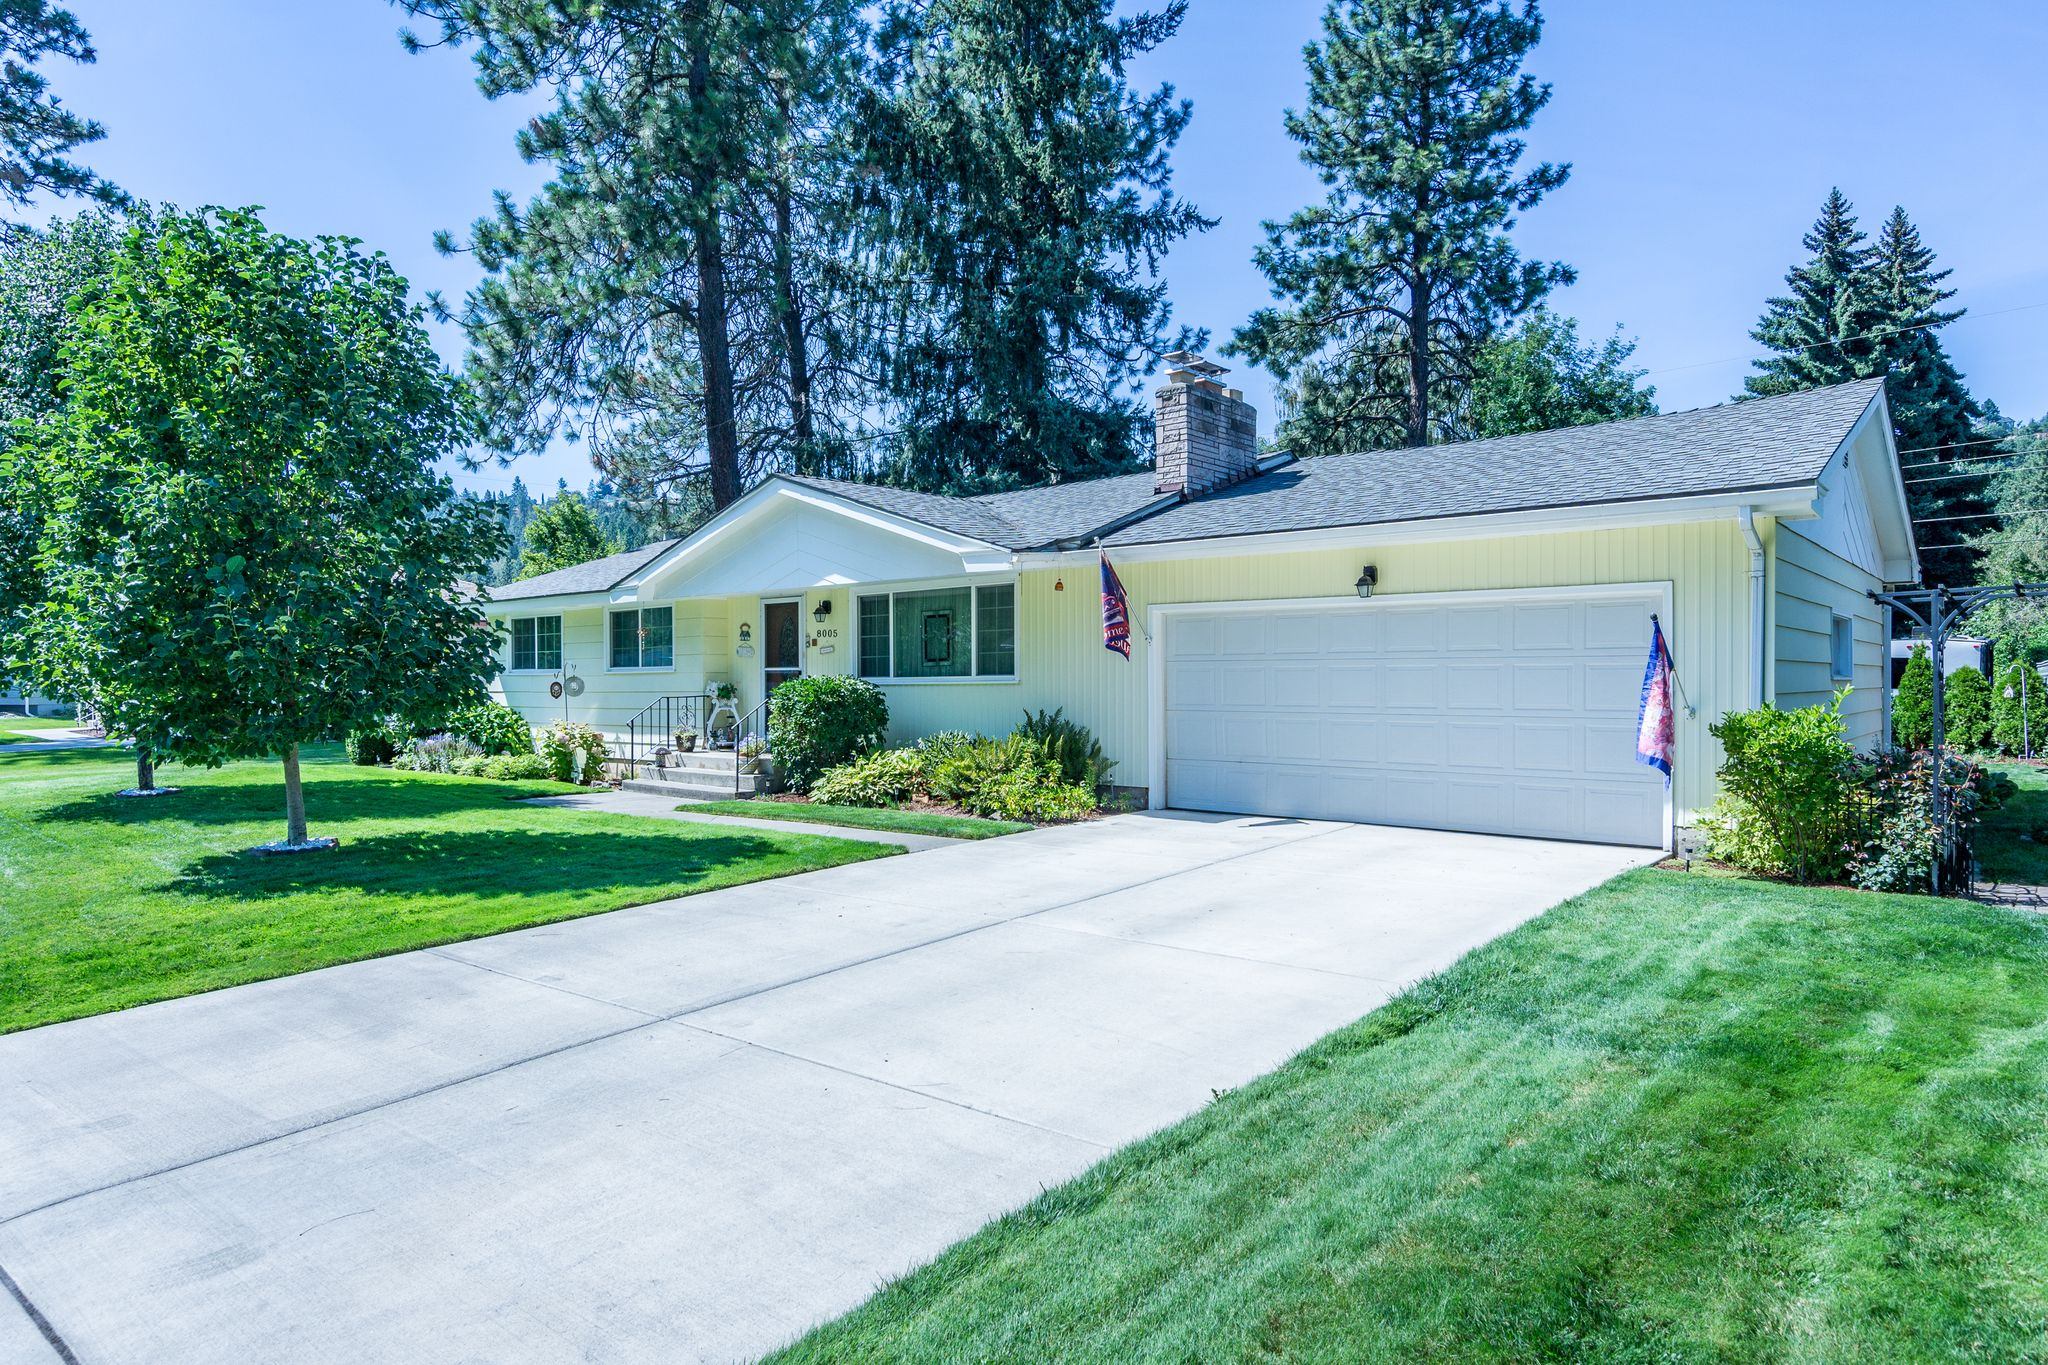 8005 N Fox Point Dr Spokane WA Recently Sold